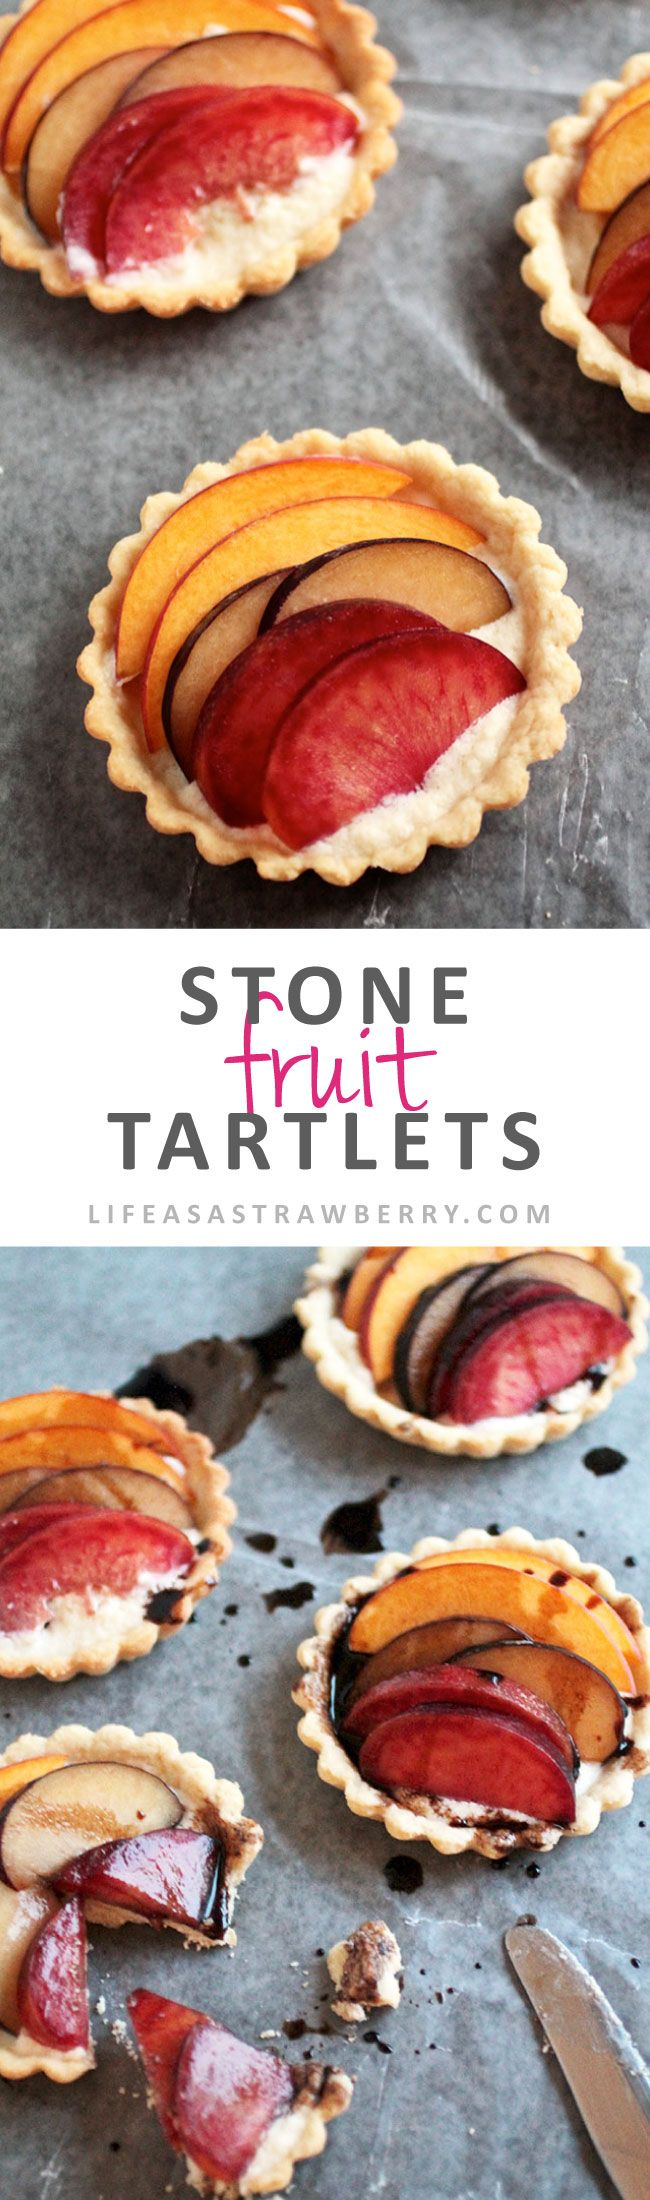 Stone Fruit Tartlets | Homemade pie crust, delicious marscapone cheese and seasonal stone fruit topped with a tasty balsamic drizzle. The perfect healthier dessert recipe for summertime!